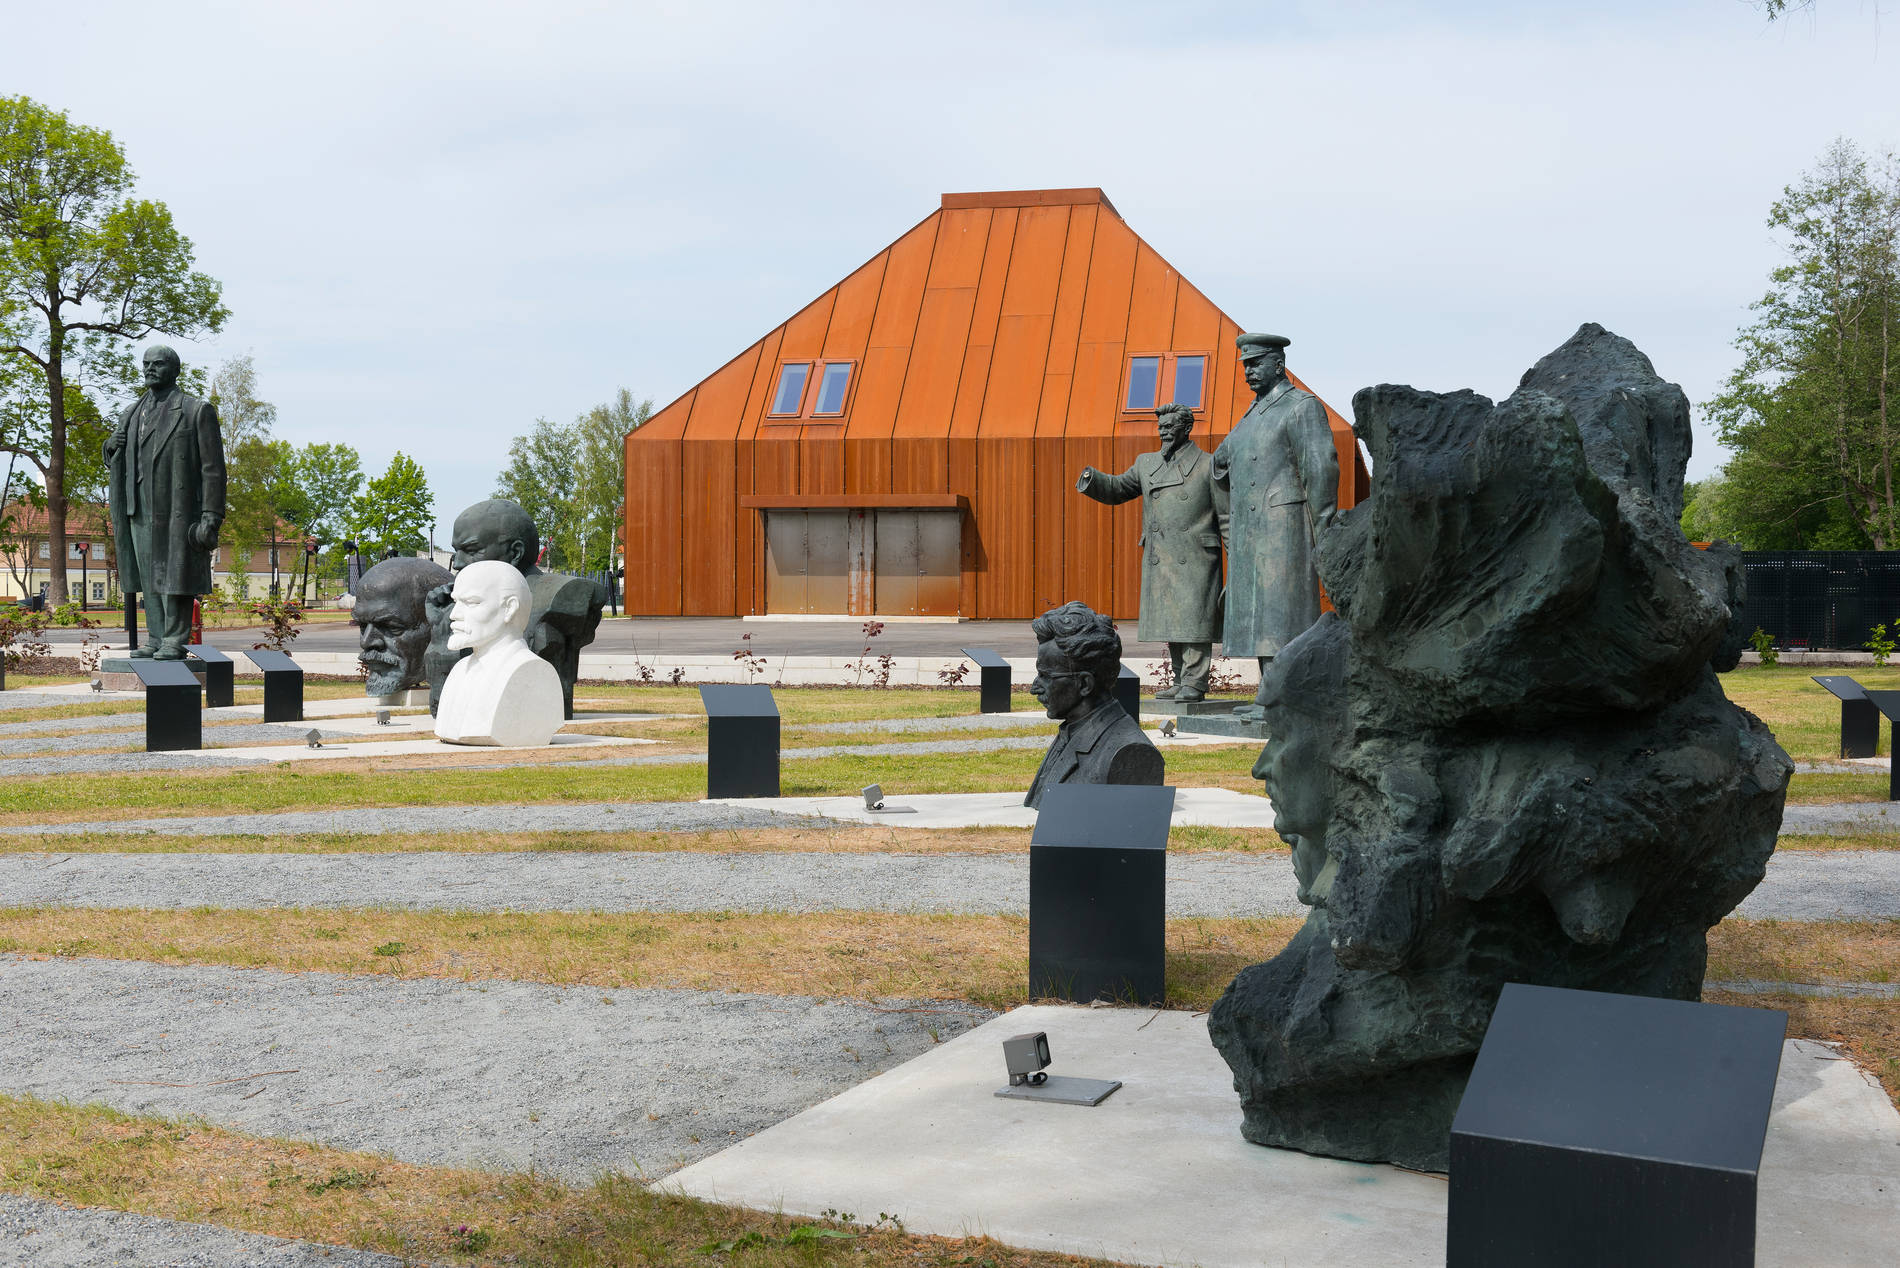 Exhibition of Soviet monuments in Tallinn, Estonia